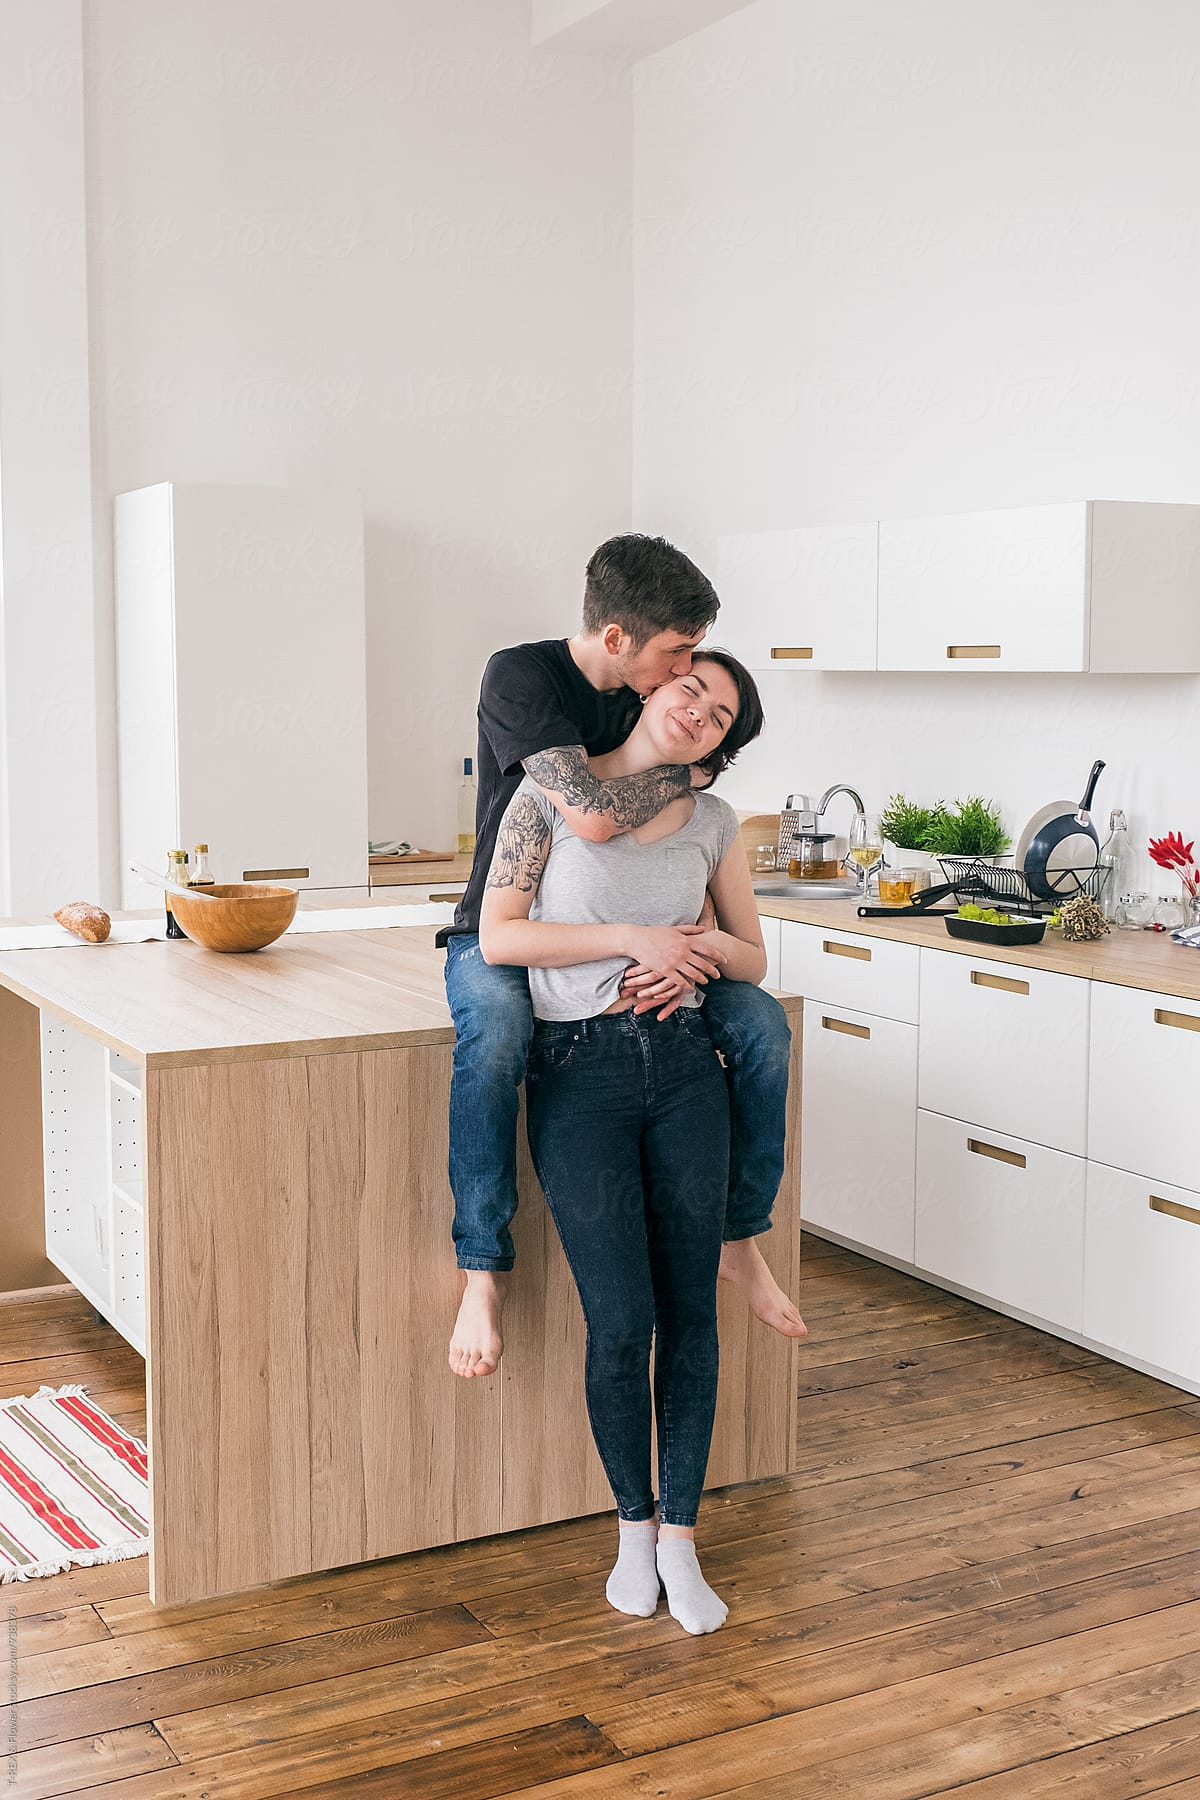 Couple Kissing In The Kitchen By Danil Nevsky Kitchen Couple Stocksy United